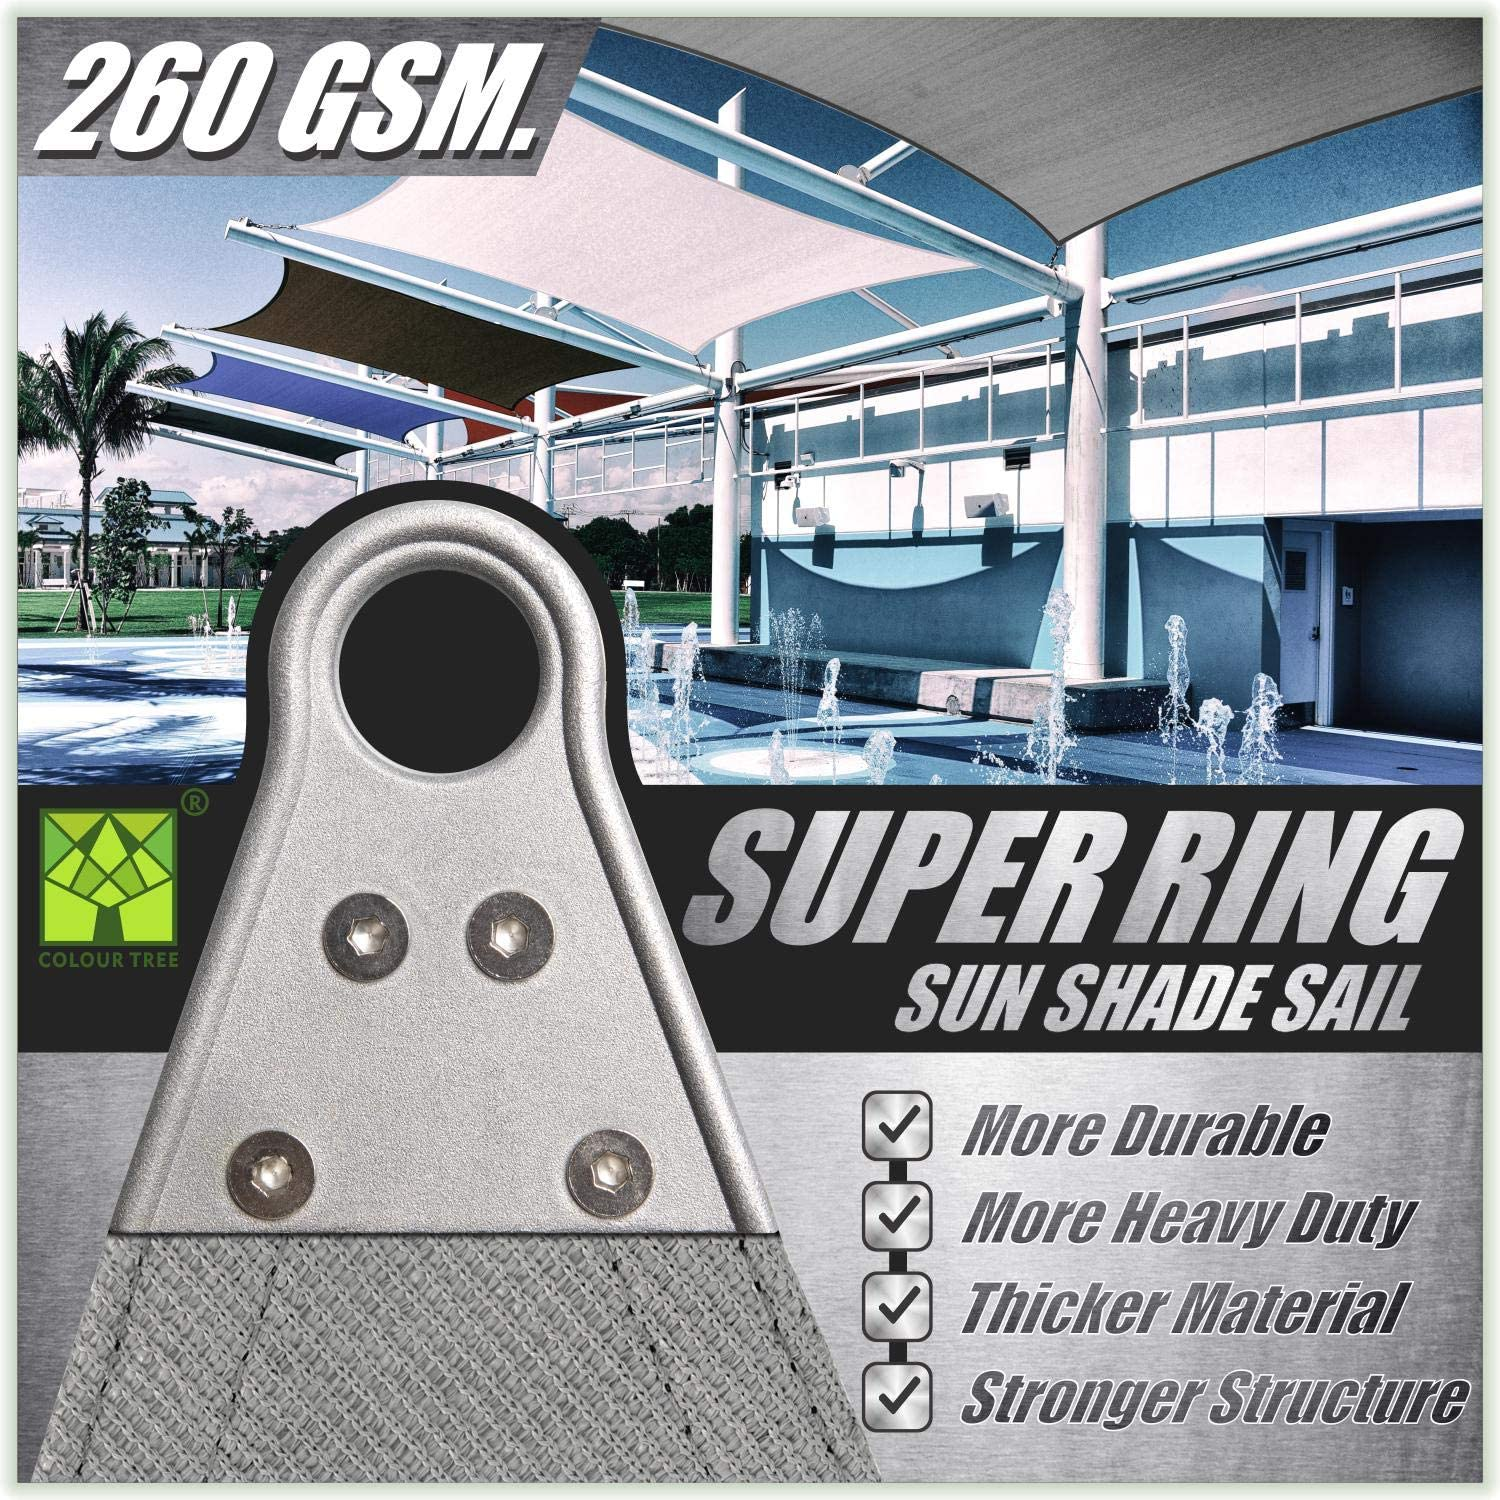 ColourTree 28' x 28' x 28' Grey Triangle Super Ring Sun Shade Sail Canopy Structure, Super Durable Heavy Duty, Reinforced Corners, Edges & 260 GSM Permeable Fabric - 5 Years Warranty